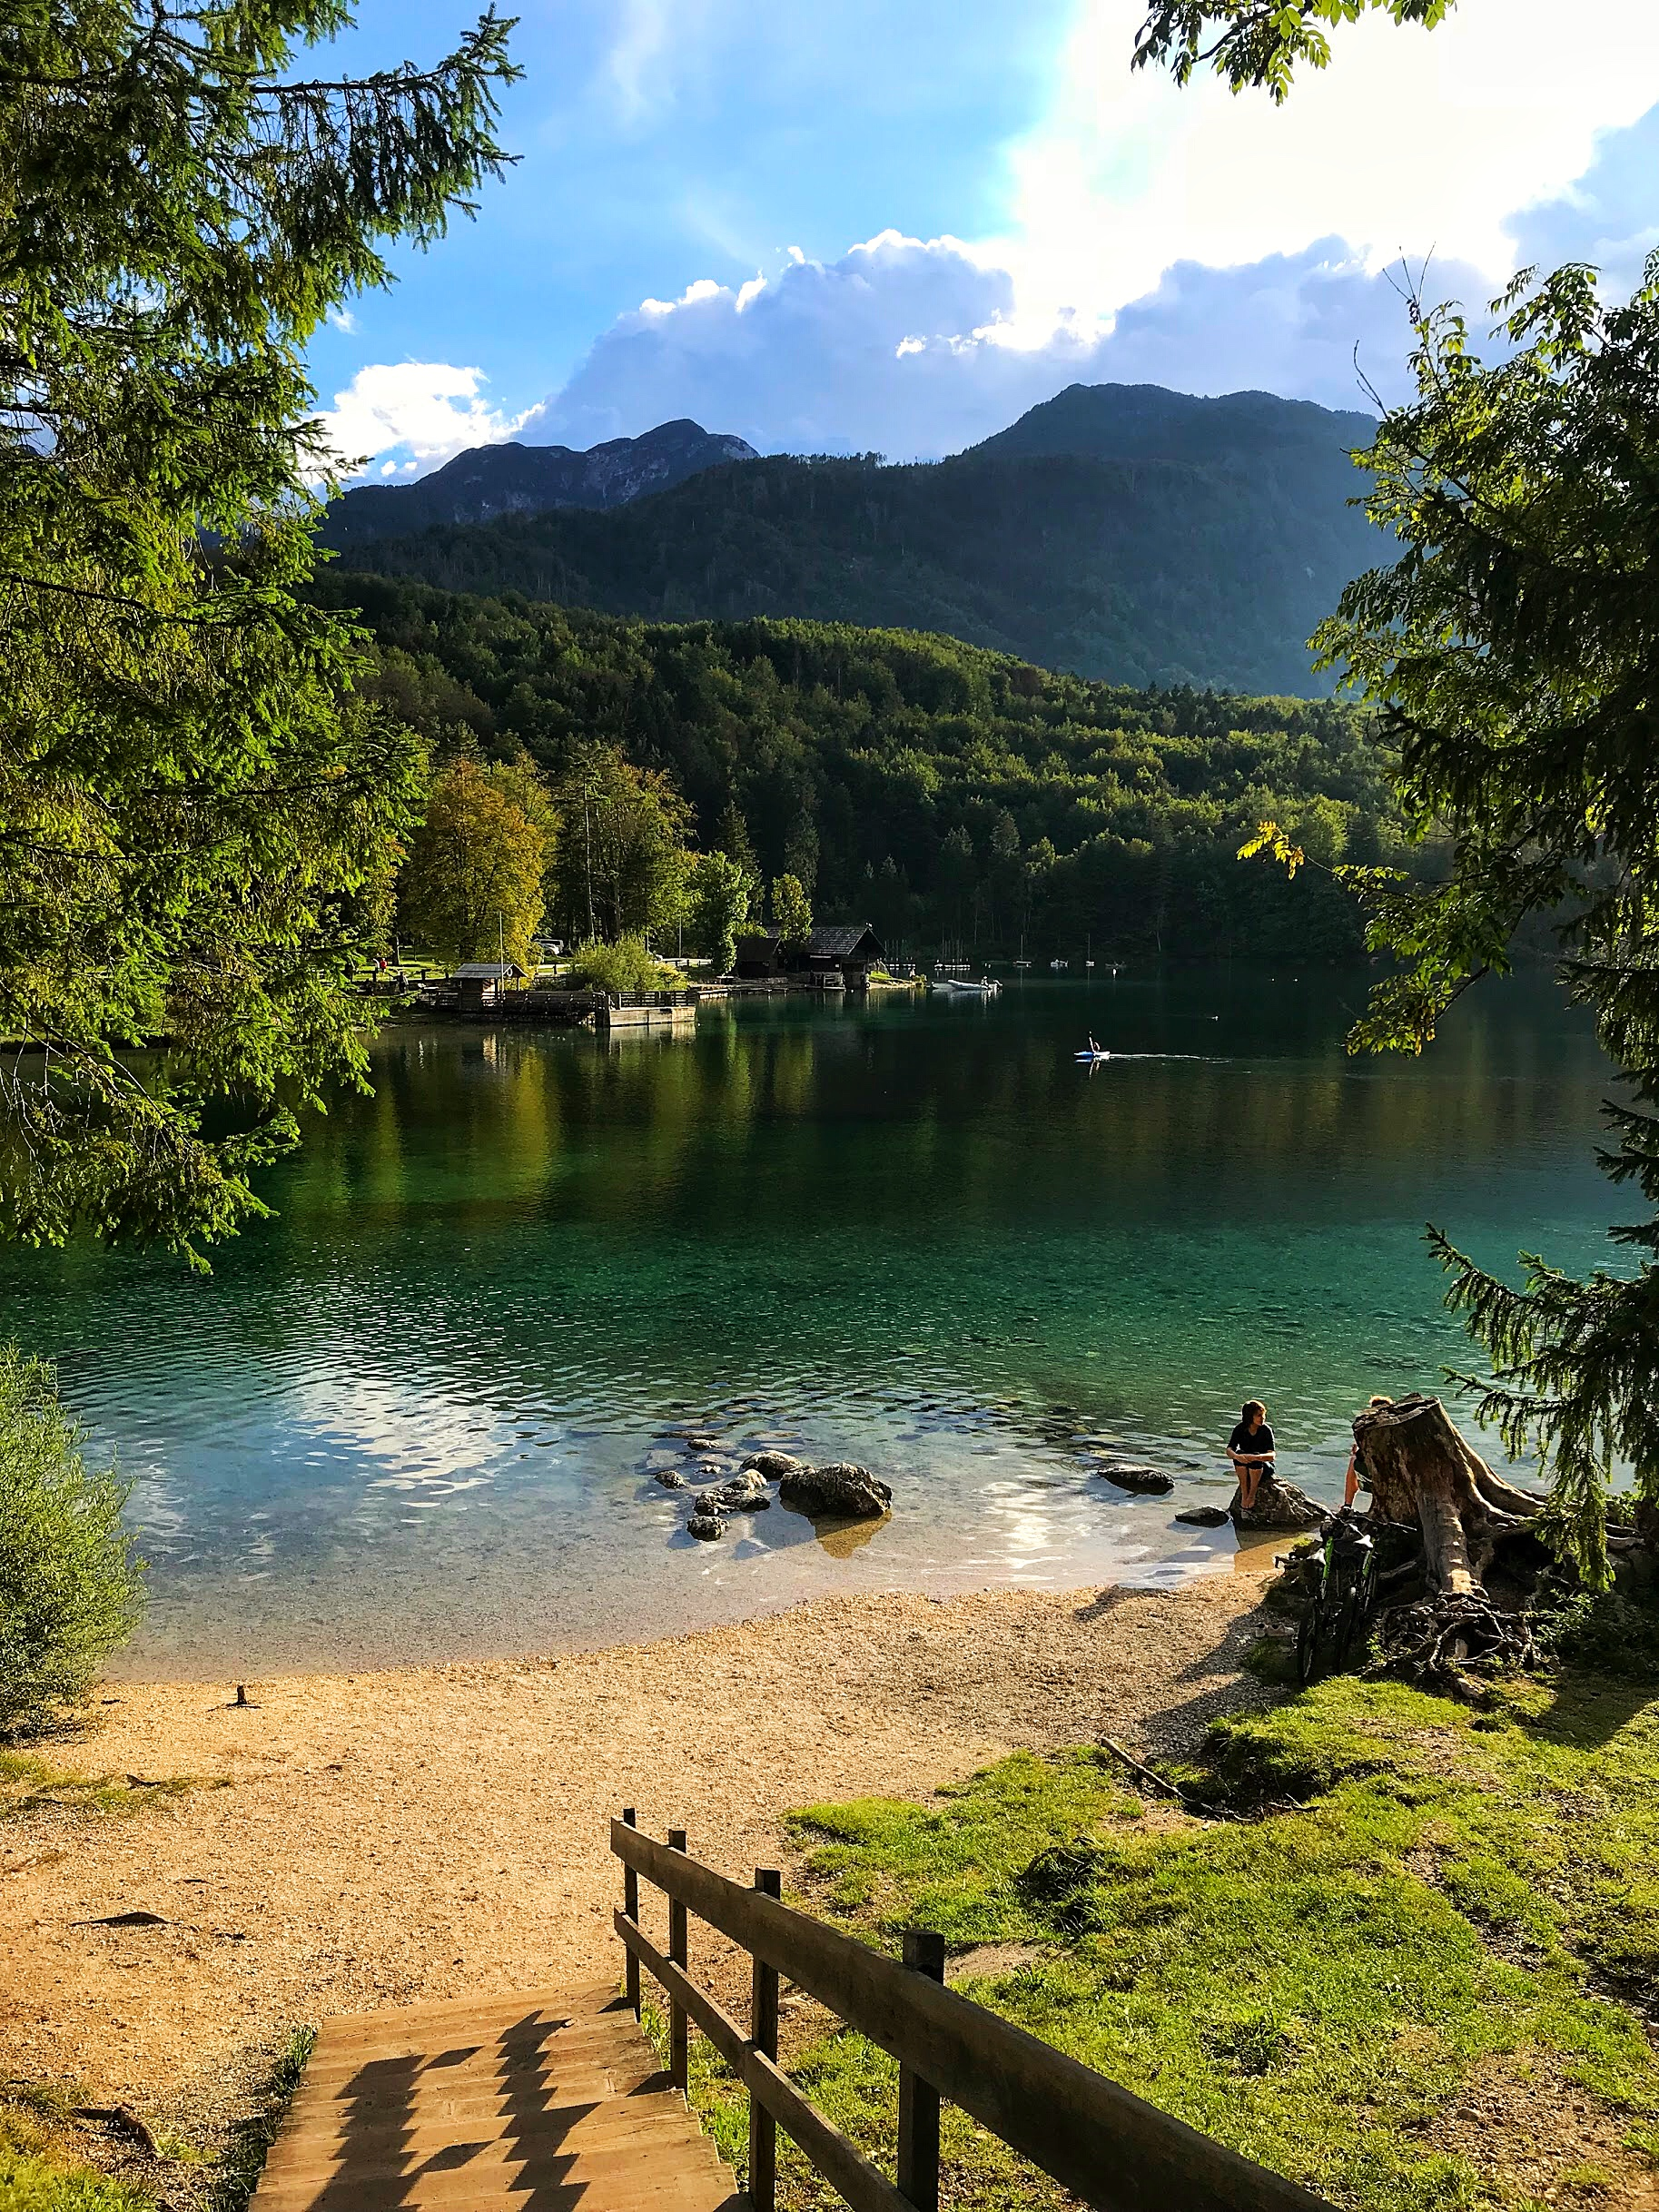 Hidden gem lakes in Slovenia